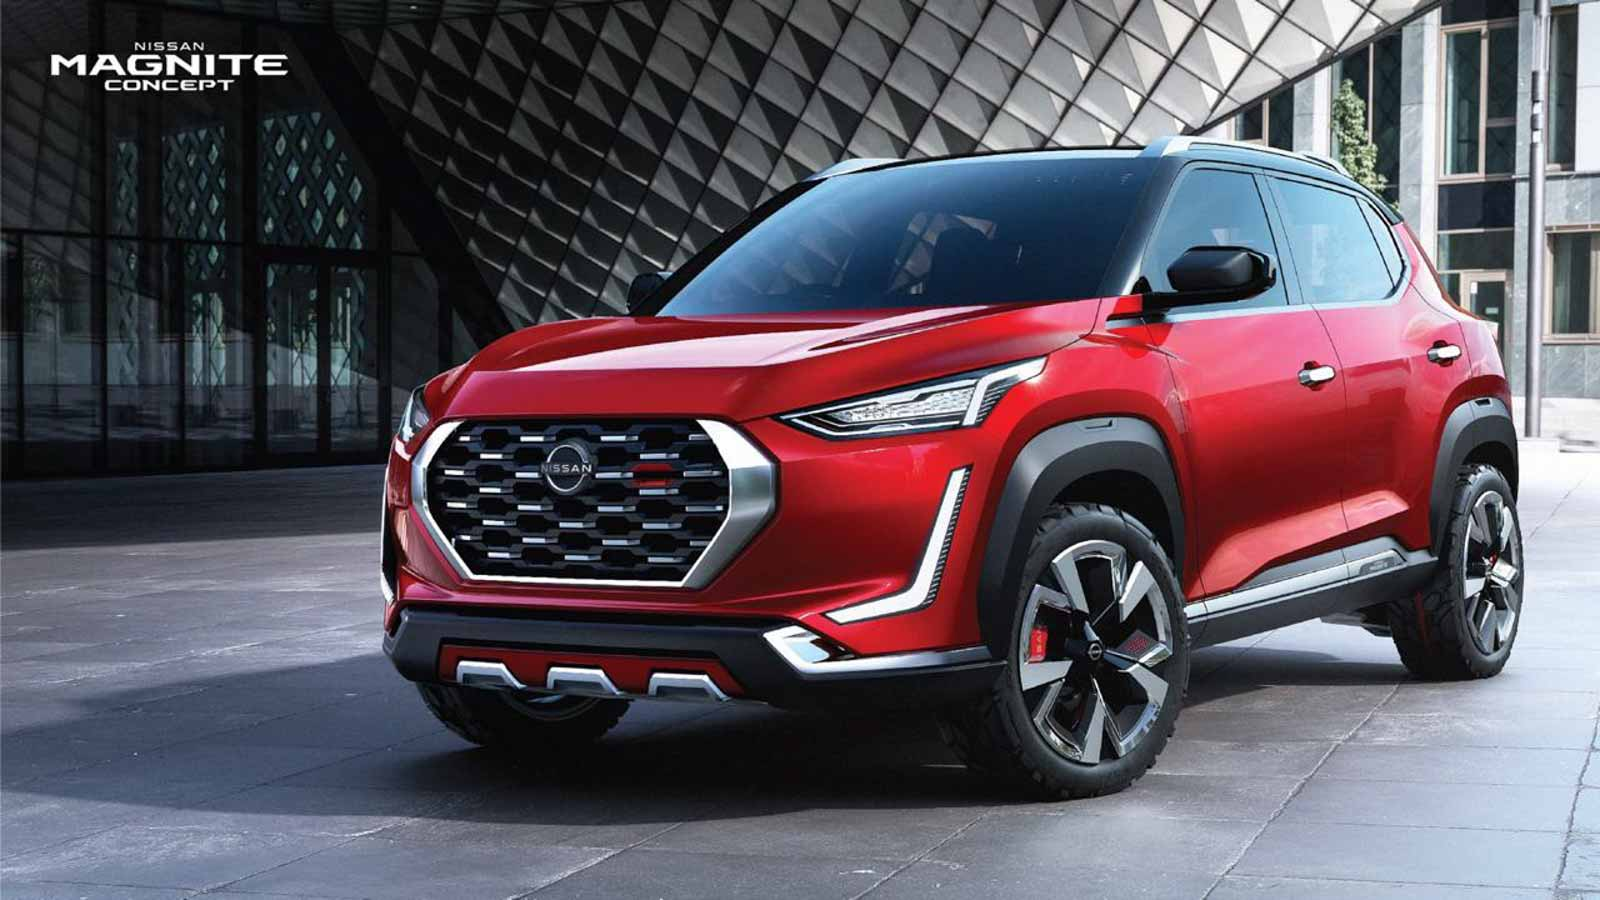 Nissan Magnite Compact SUV Revealed Officially Ahead Of Launch